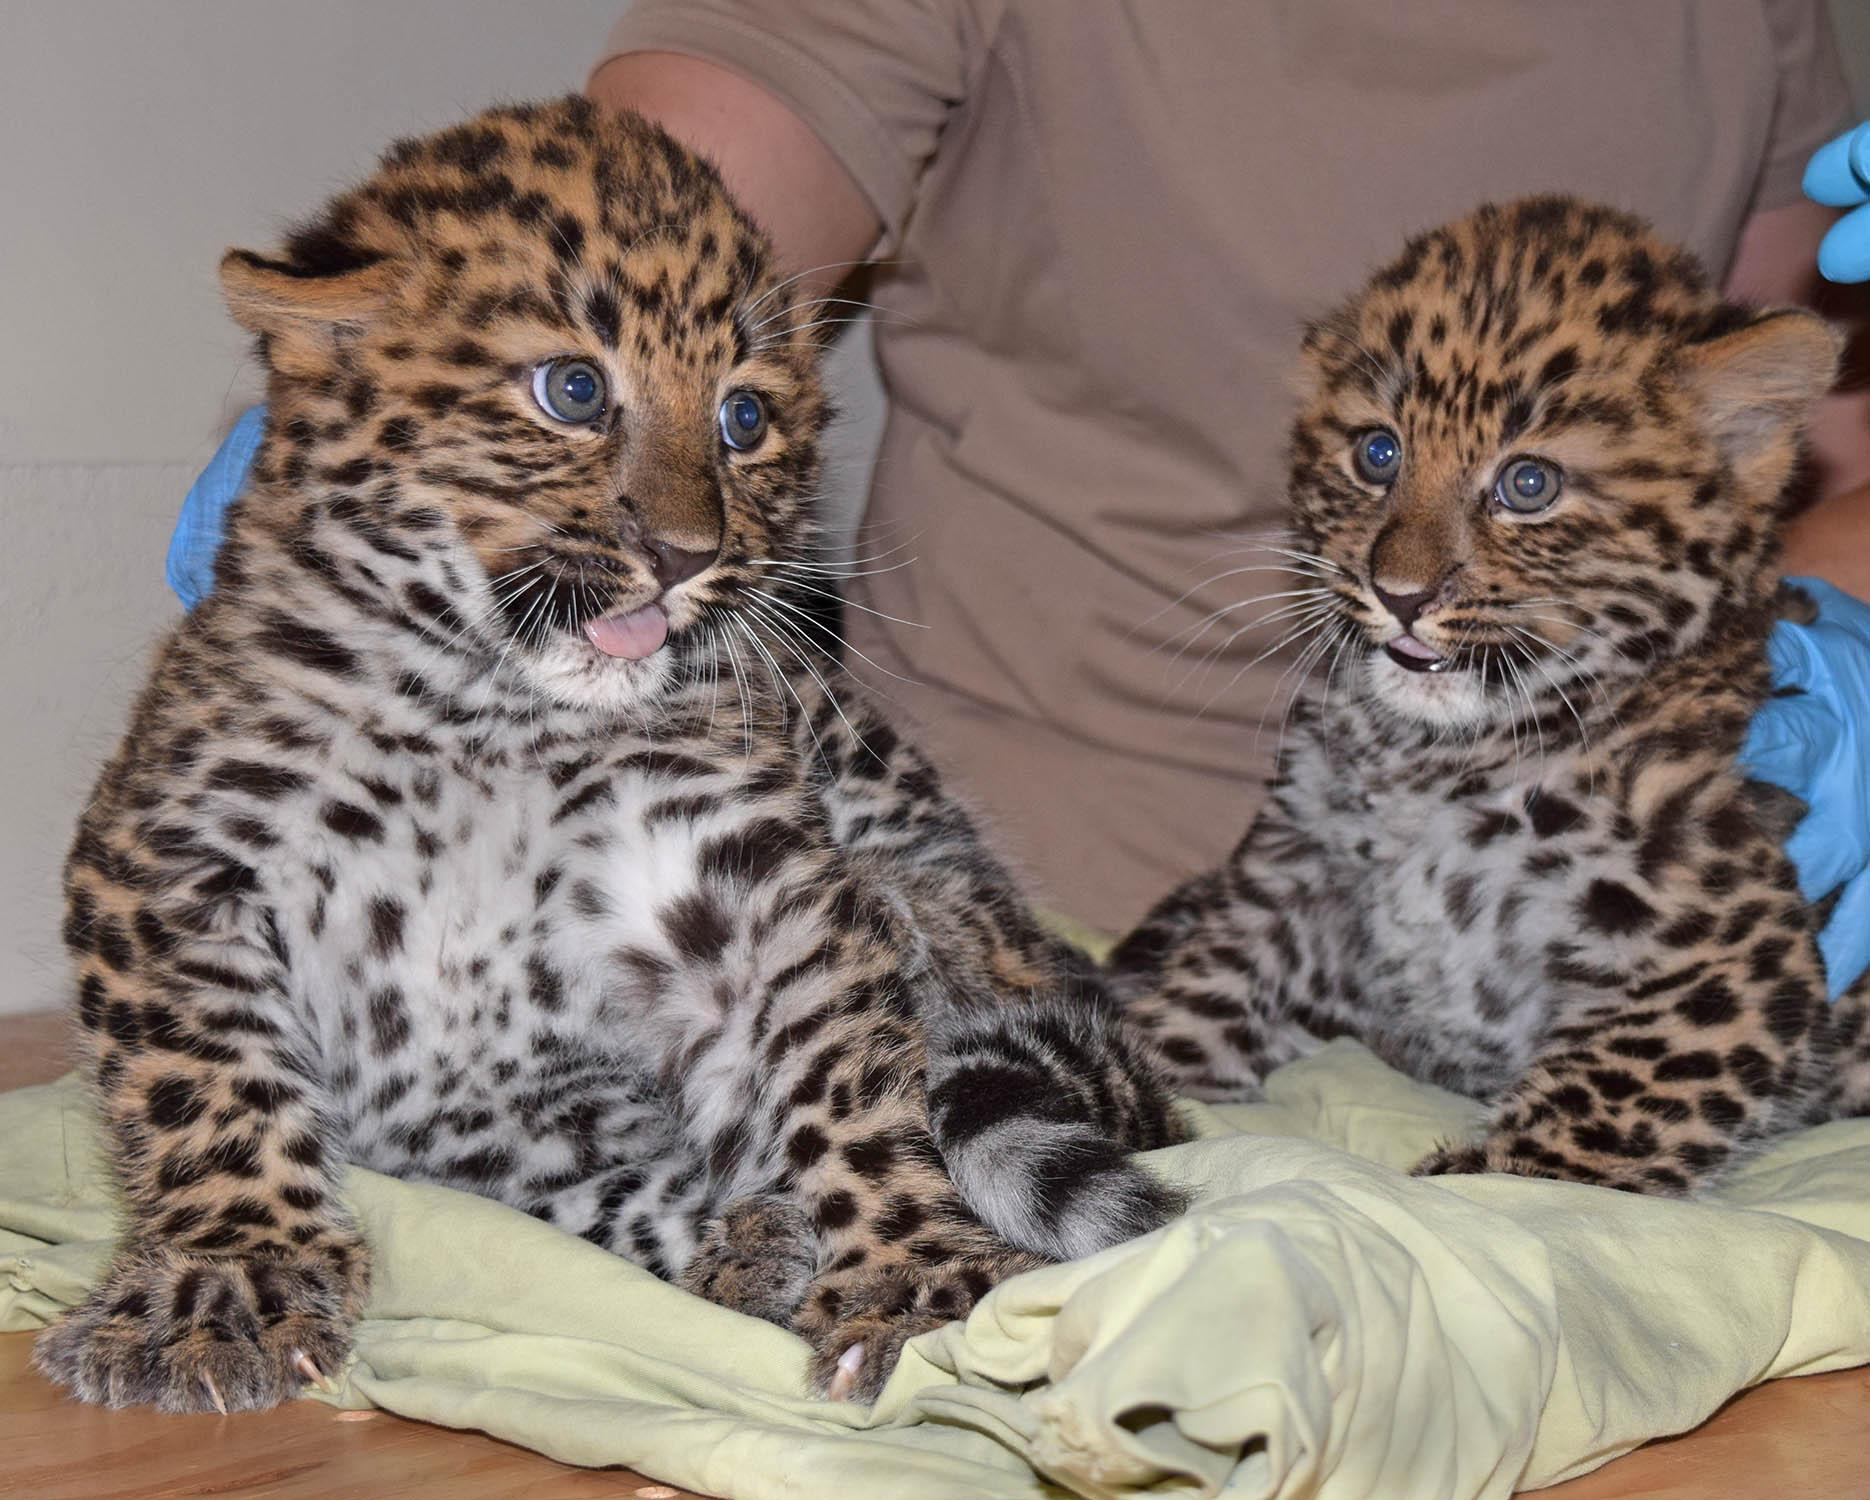 Two Amur lopeard cubs were born last year at Brookfield Zoo. (Cathy Bazzoni / Chicago Zoological Society)